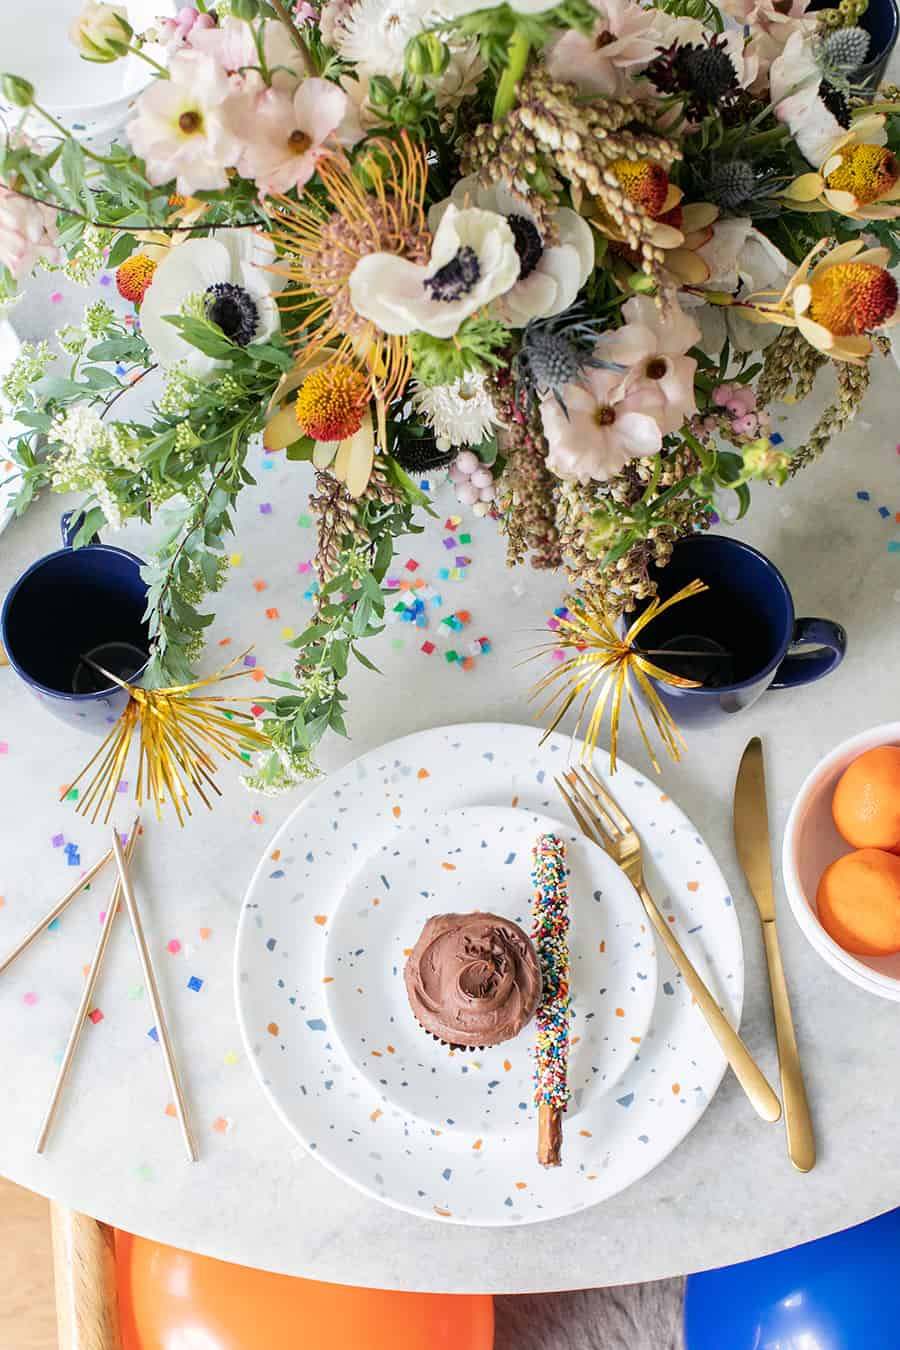 A birthday party set-up with flowers, cupcake, plates and confetti.